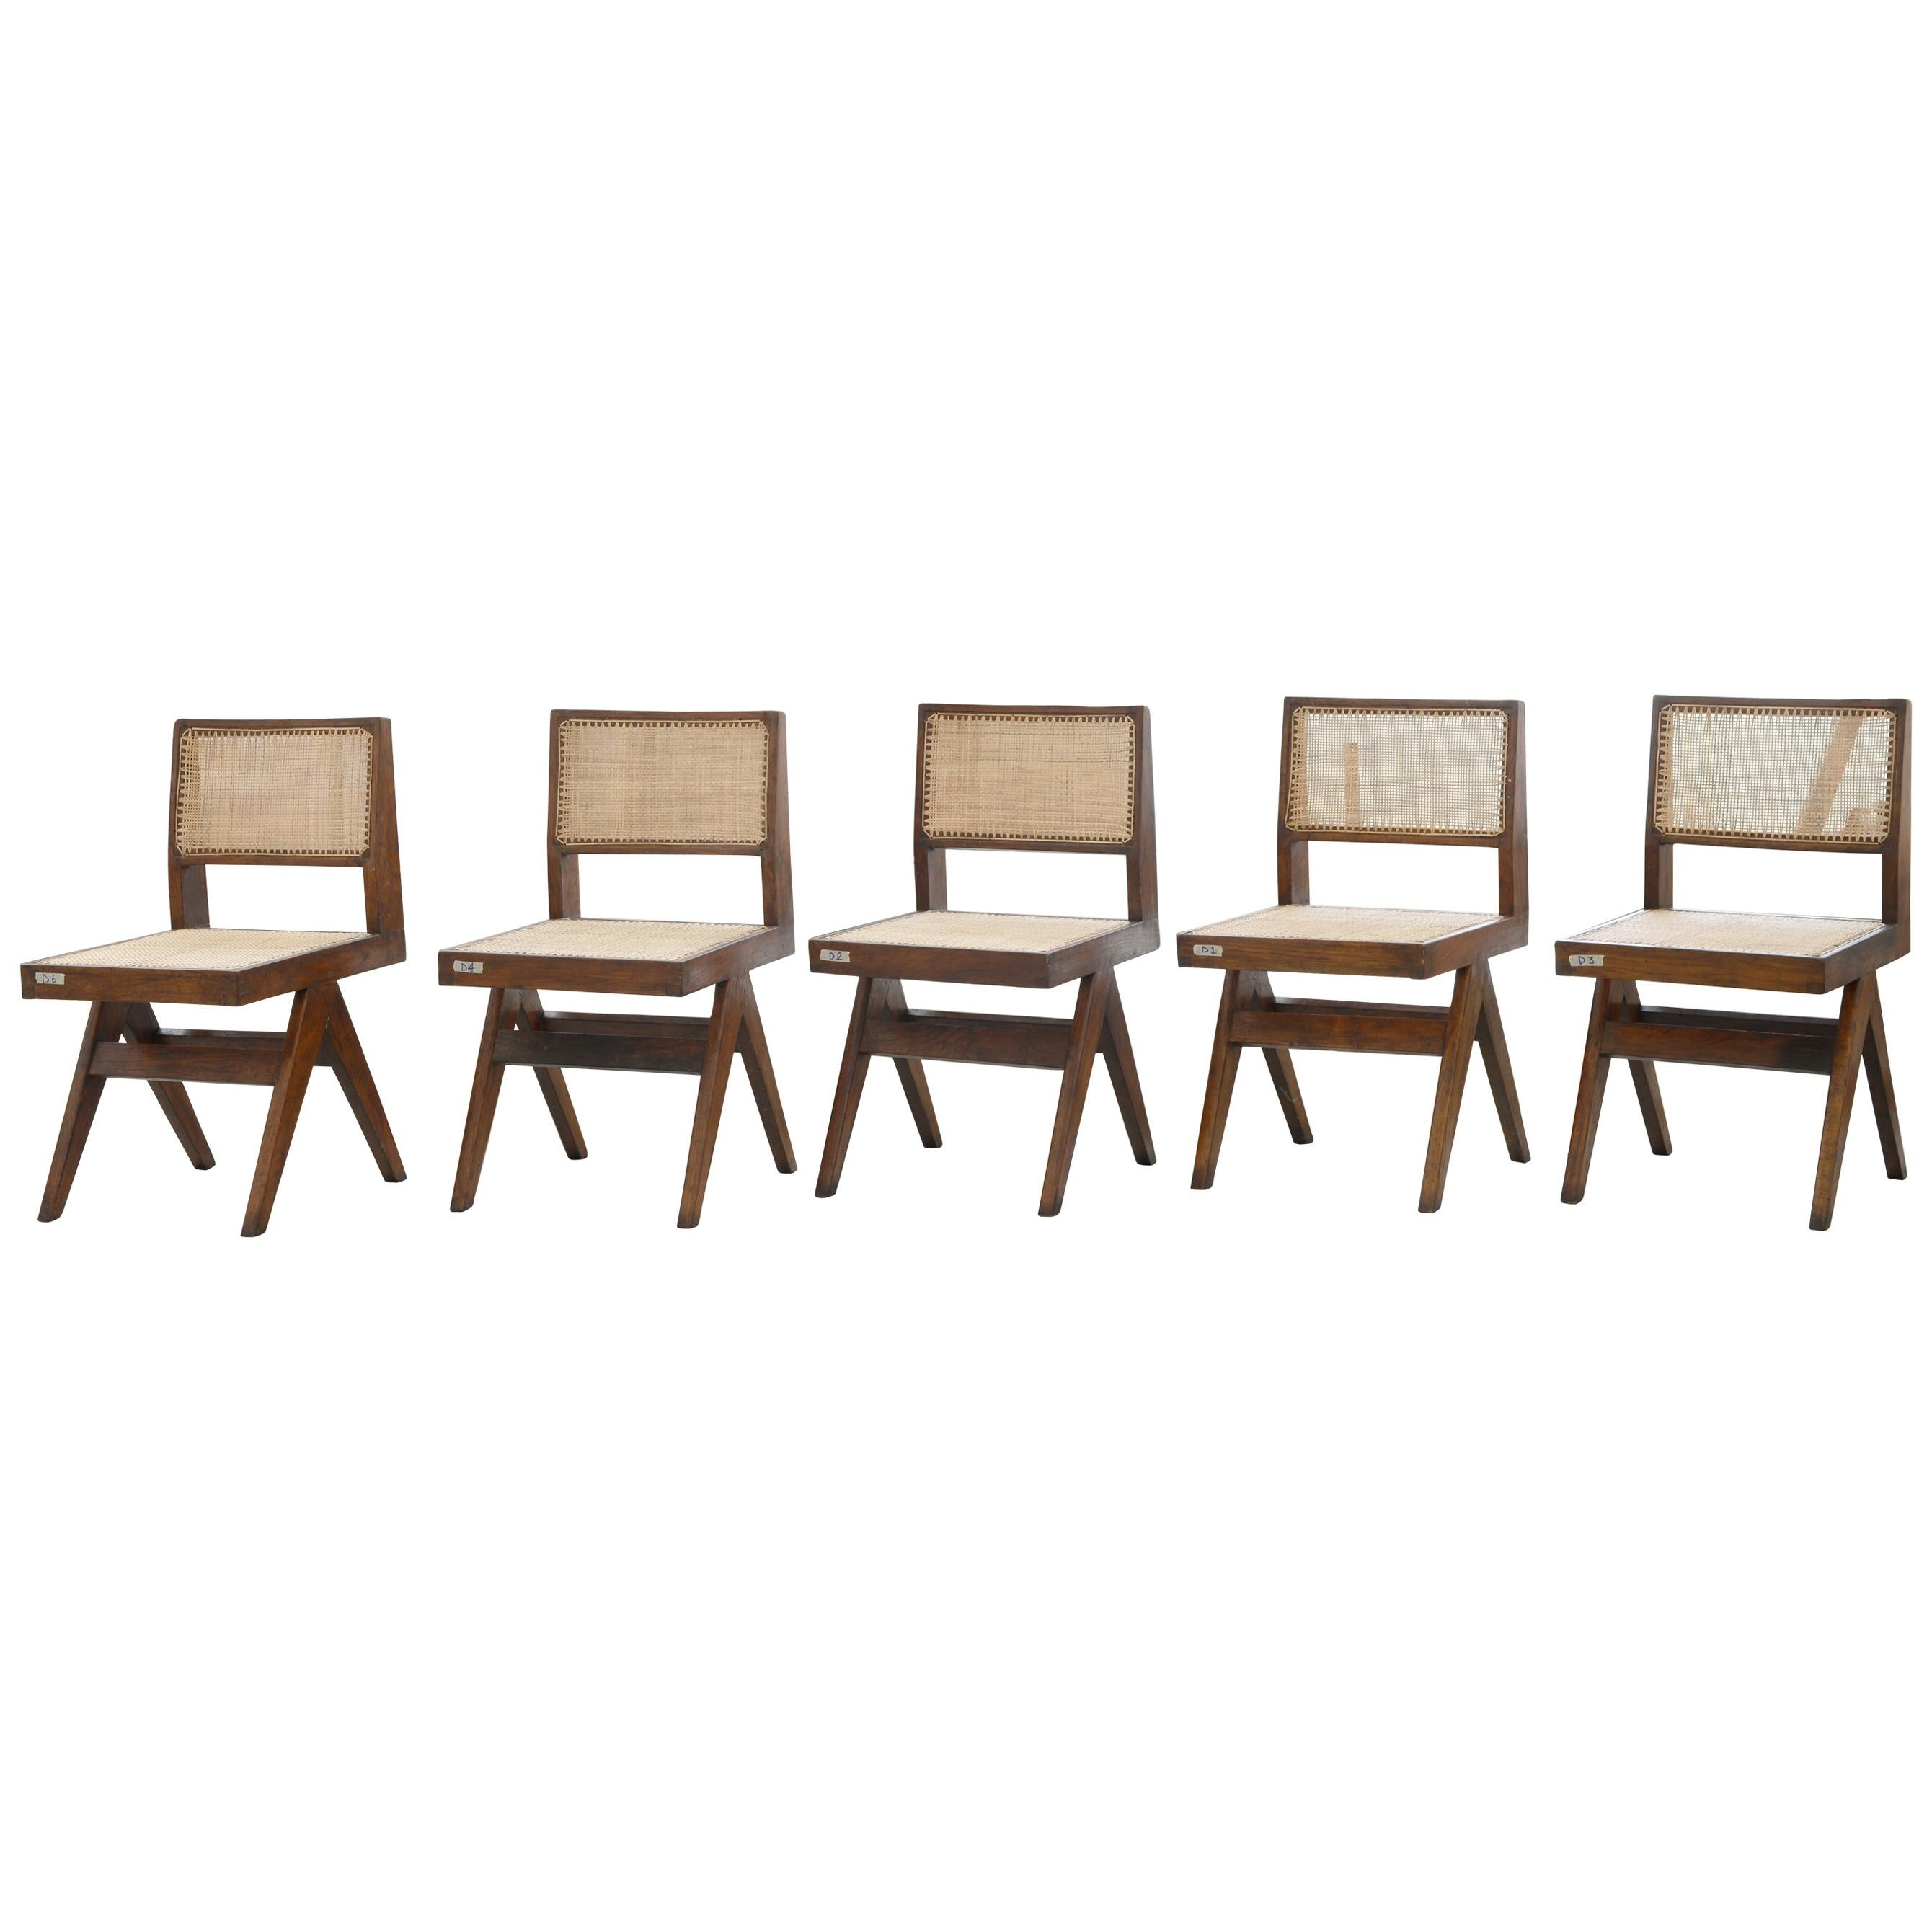 Pierre Jeanneret PJ-SI-25-A Set of 8 Chairs | Authentic Mid-Century Modern